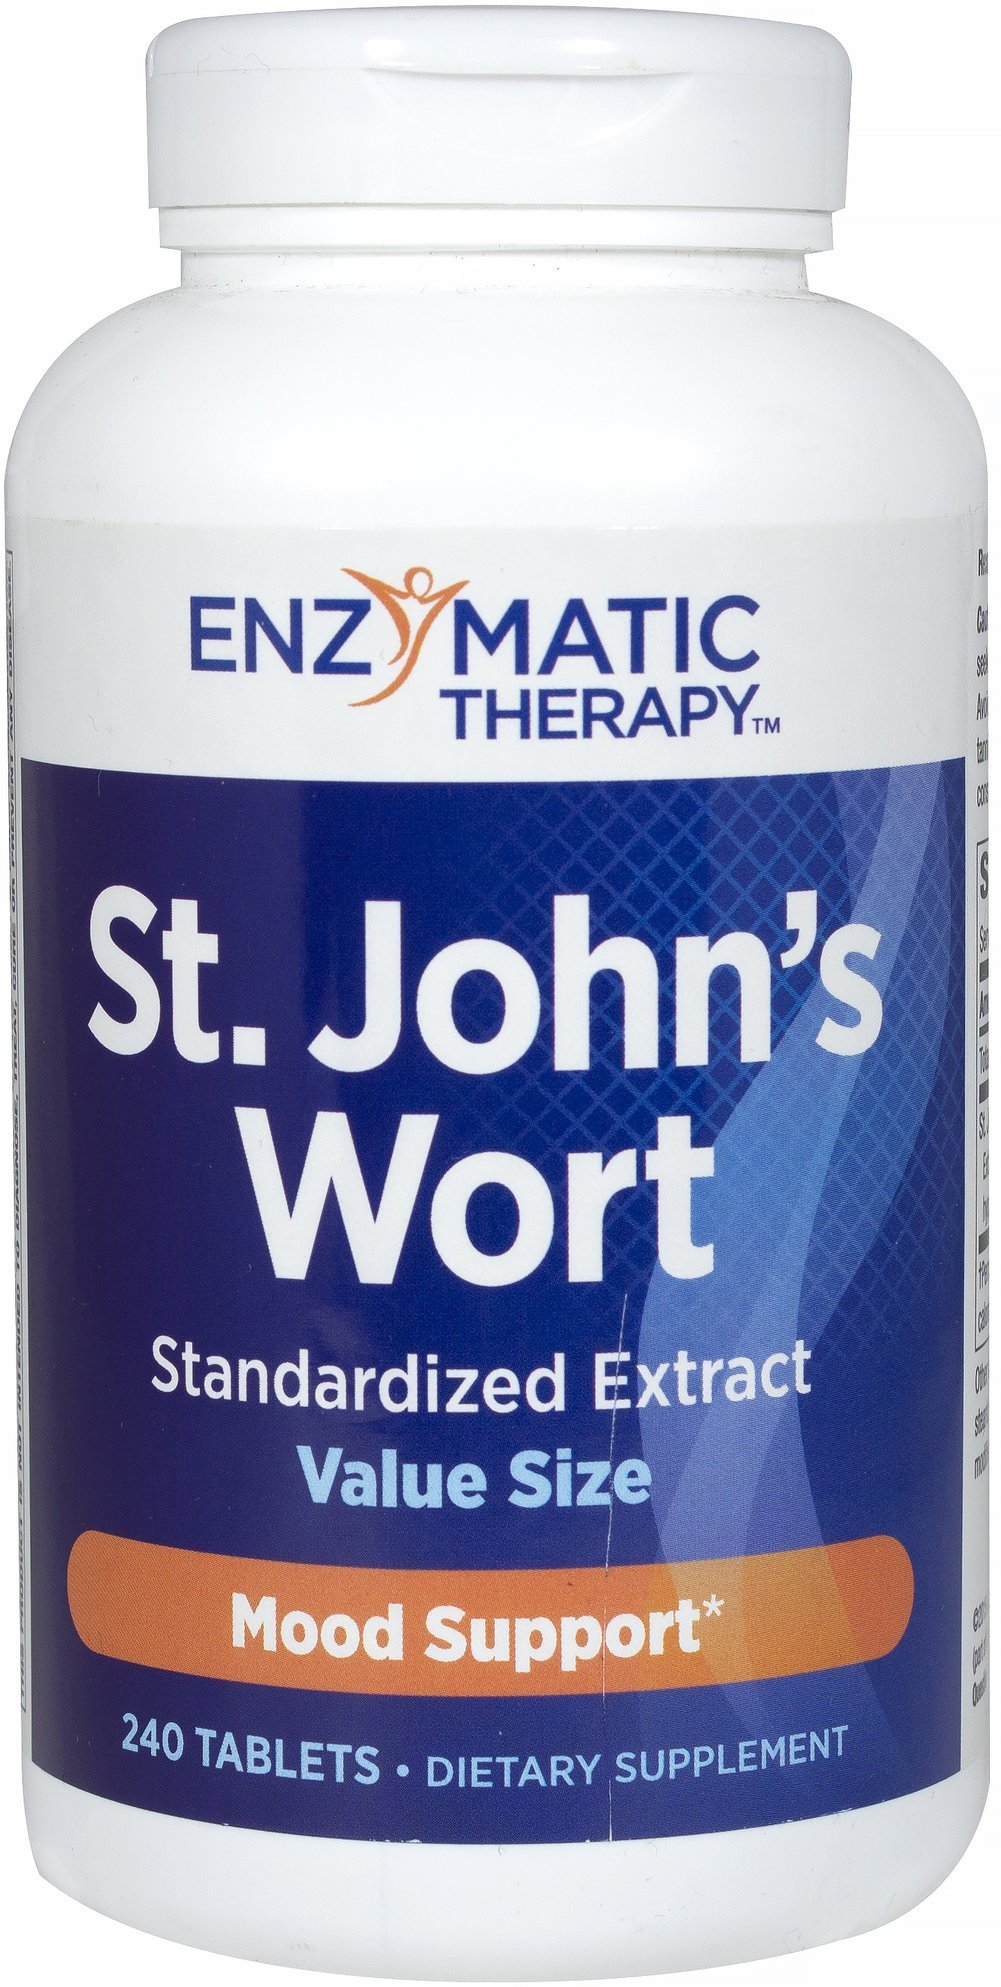 Enzymatic Therapy St. John's Wort Extract 450 mg Extra Strength-240 Tablets